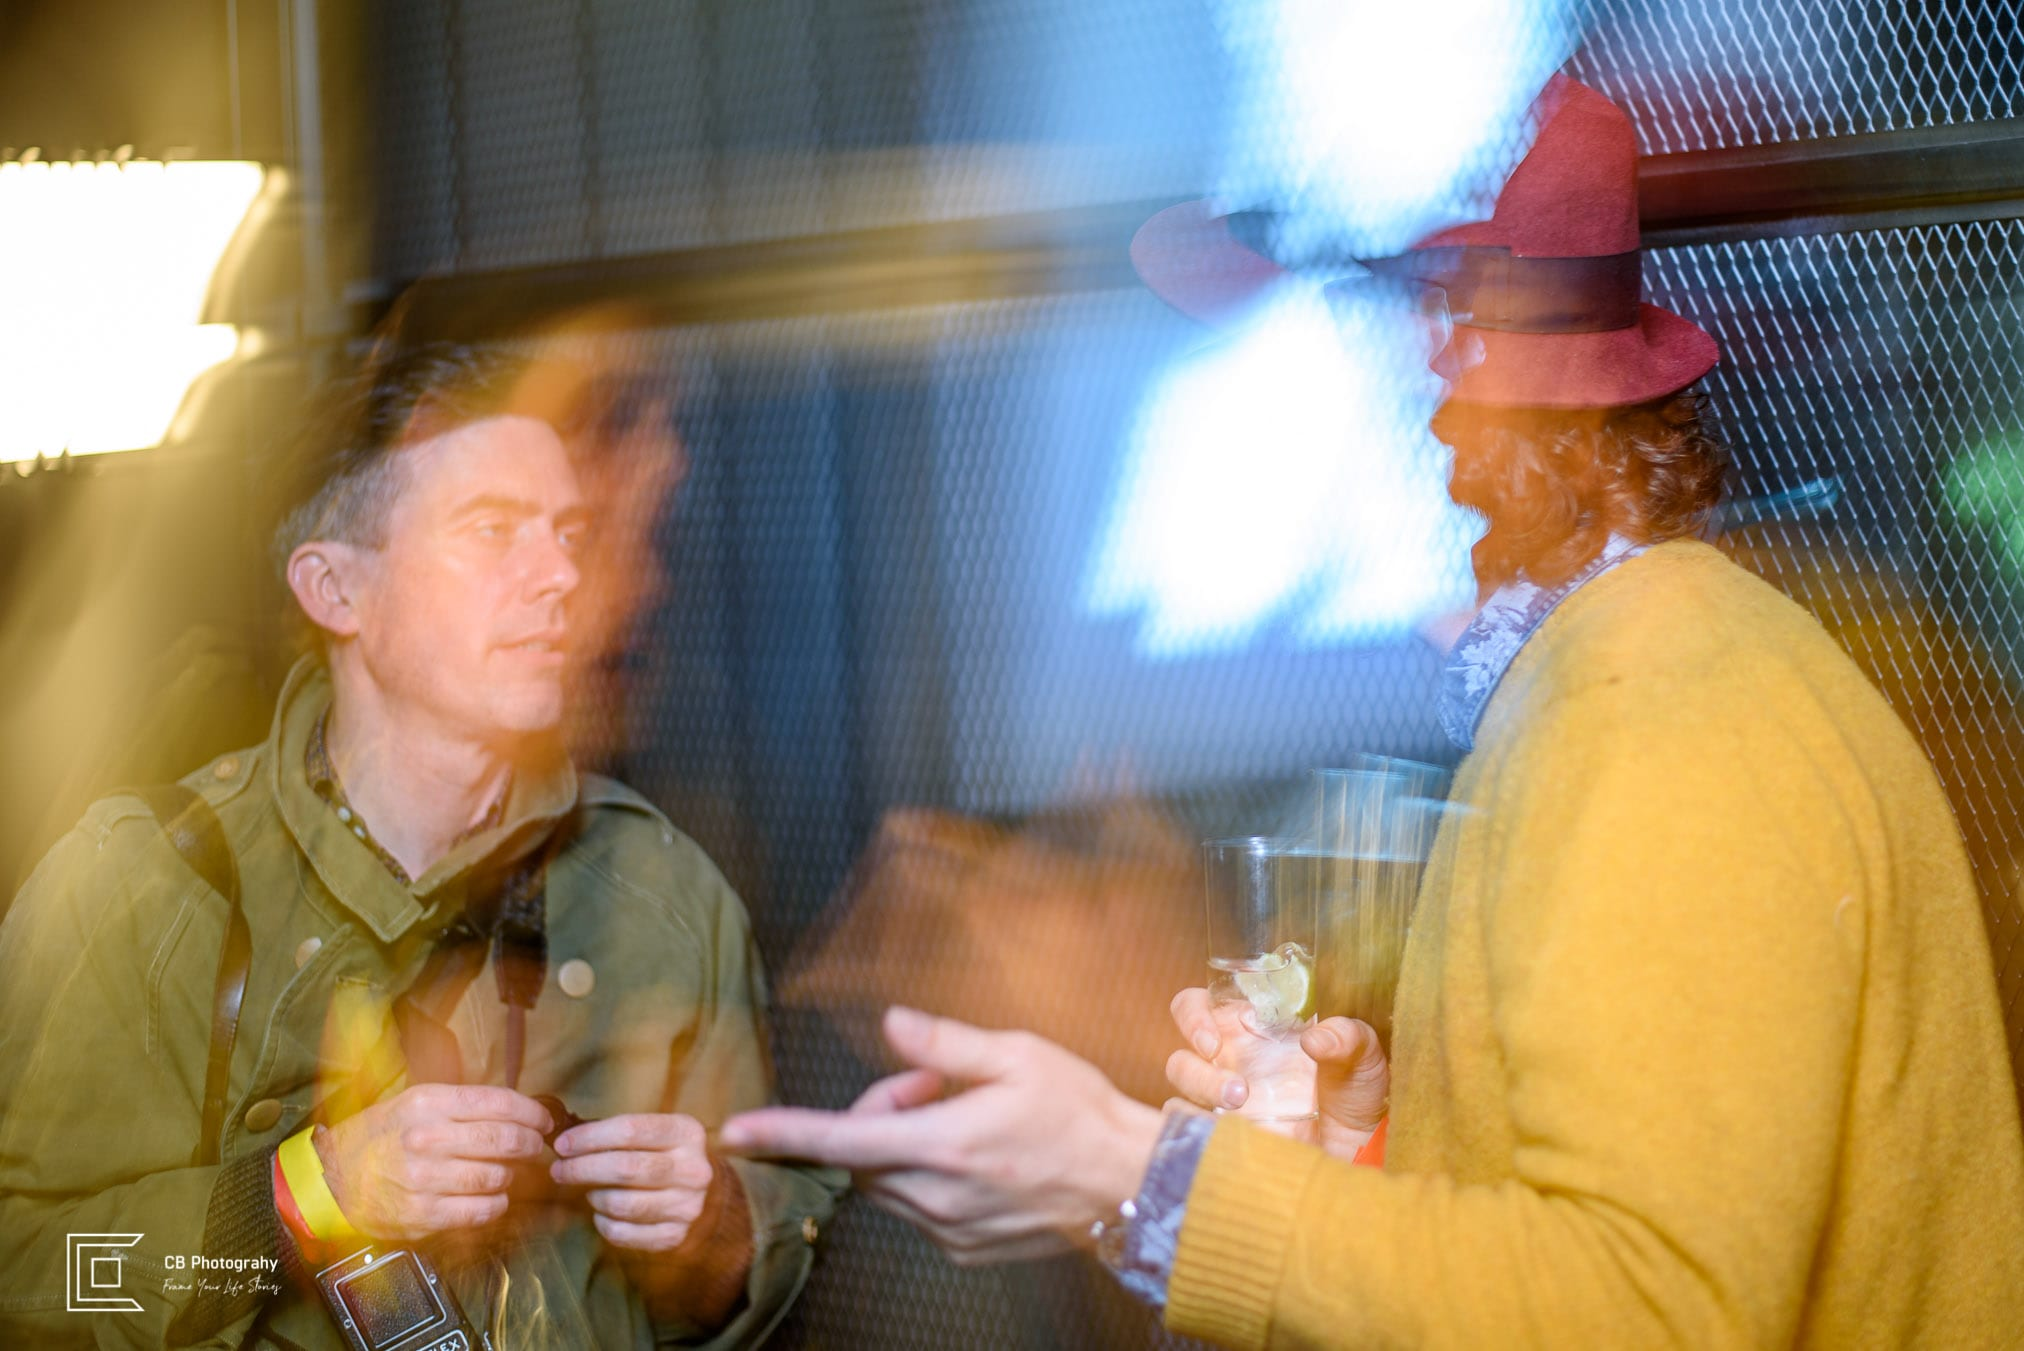 People talking during a party